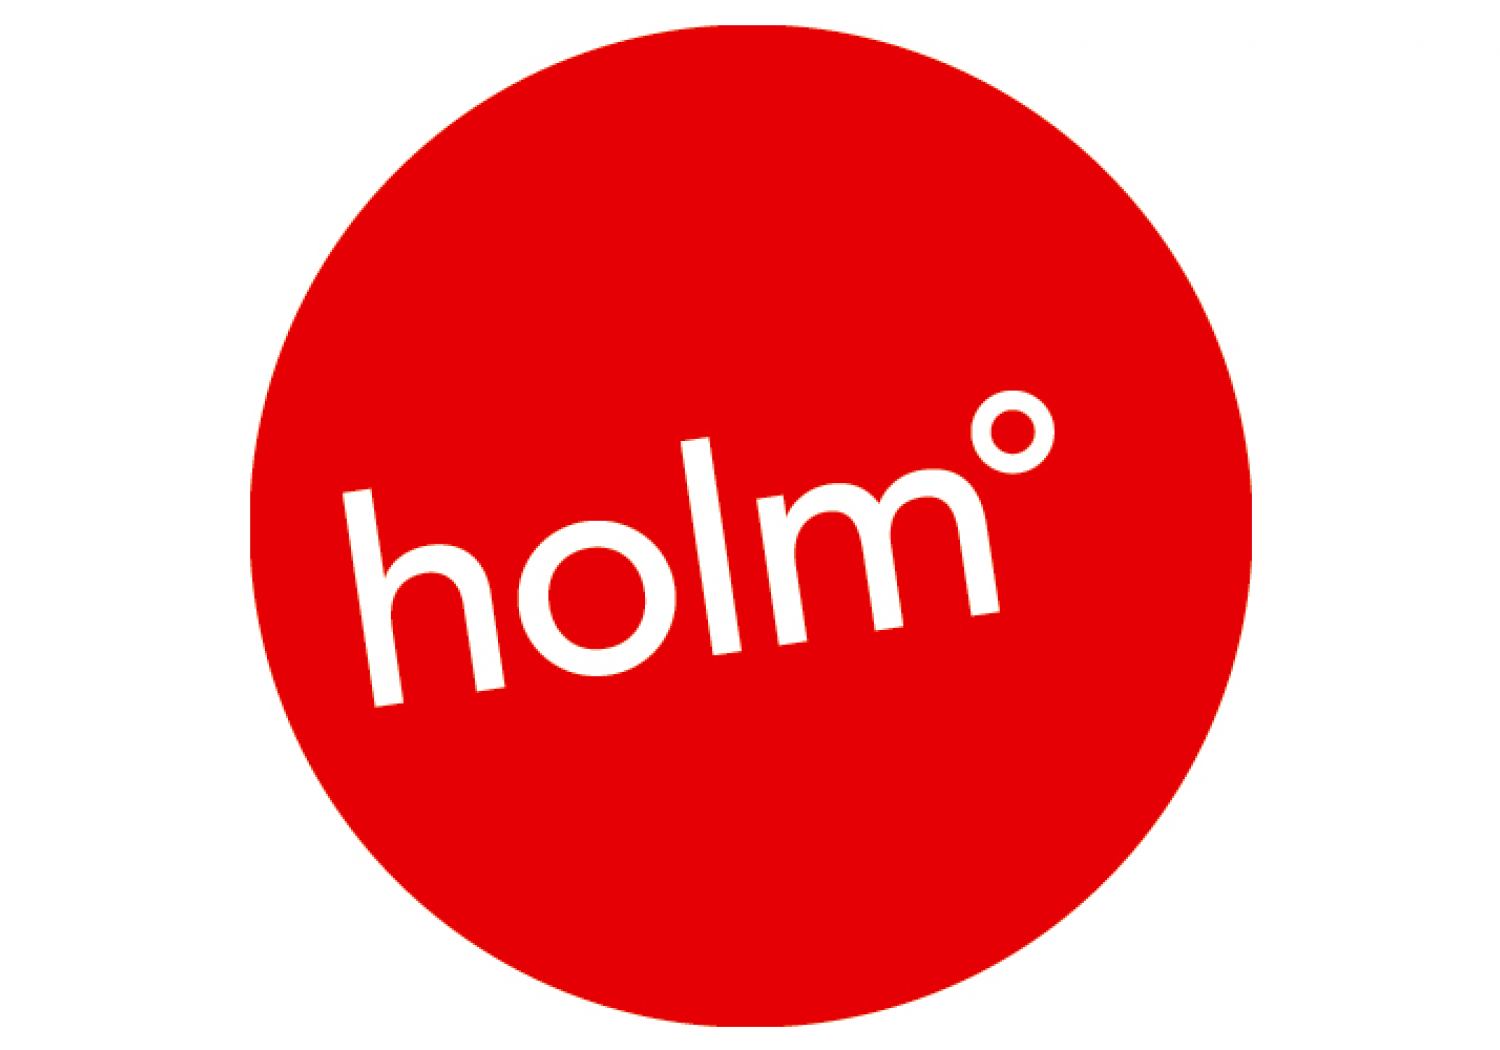 holm on pinterest